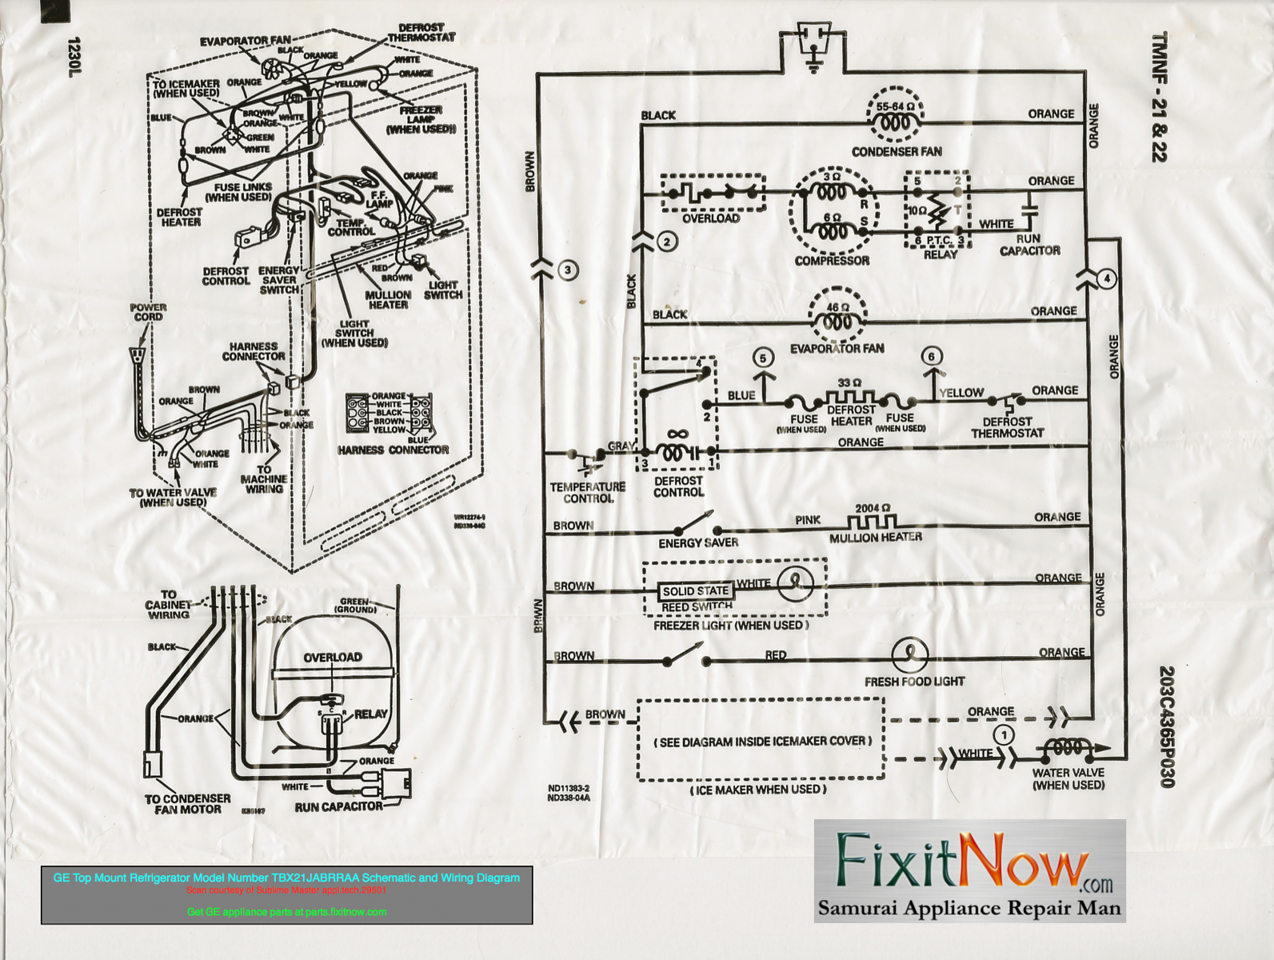 Model A Wiring Schematic Another Diagrams Ug Munity Jimi Hendrix Fuzz Face Diagram And Schematics Appliantology Rh Smugmug Com For Cars Electrical